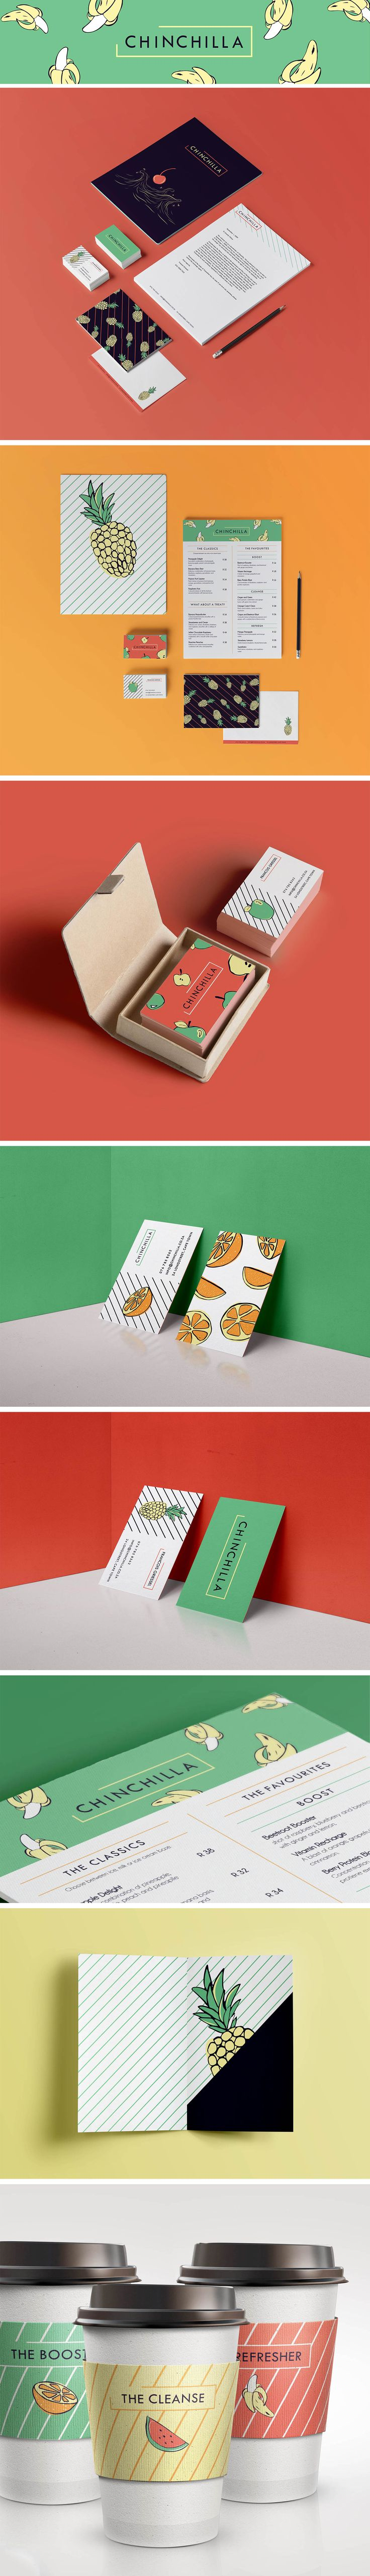 #Corporate #Identity I designed for a #student #project #branding #business #cards #design #colours #Patterns #Pineapple #fruit #fun #fresh #Chinchilla #Smoothie #bar